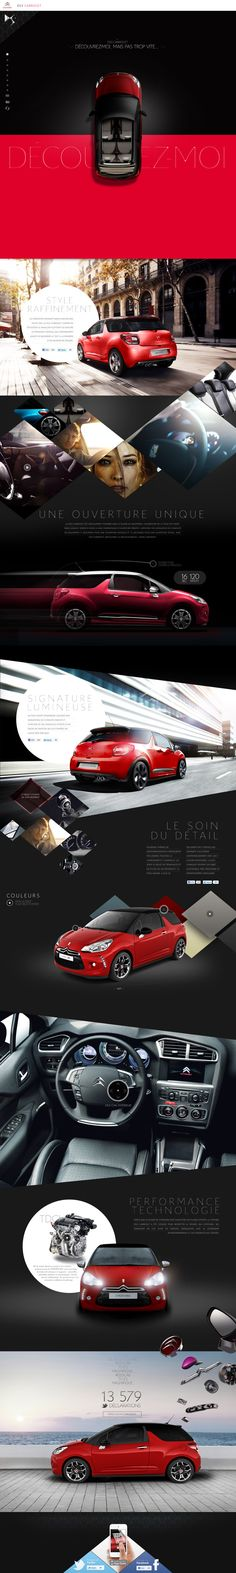 Citroen DS3 Cab by Sylvain Weiss, via Behance